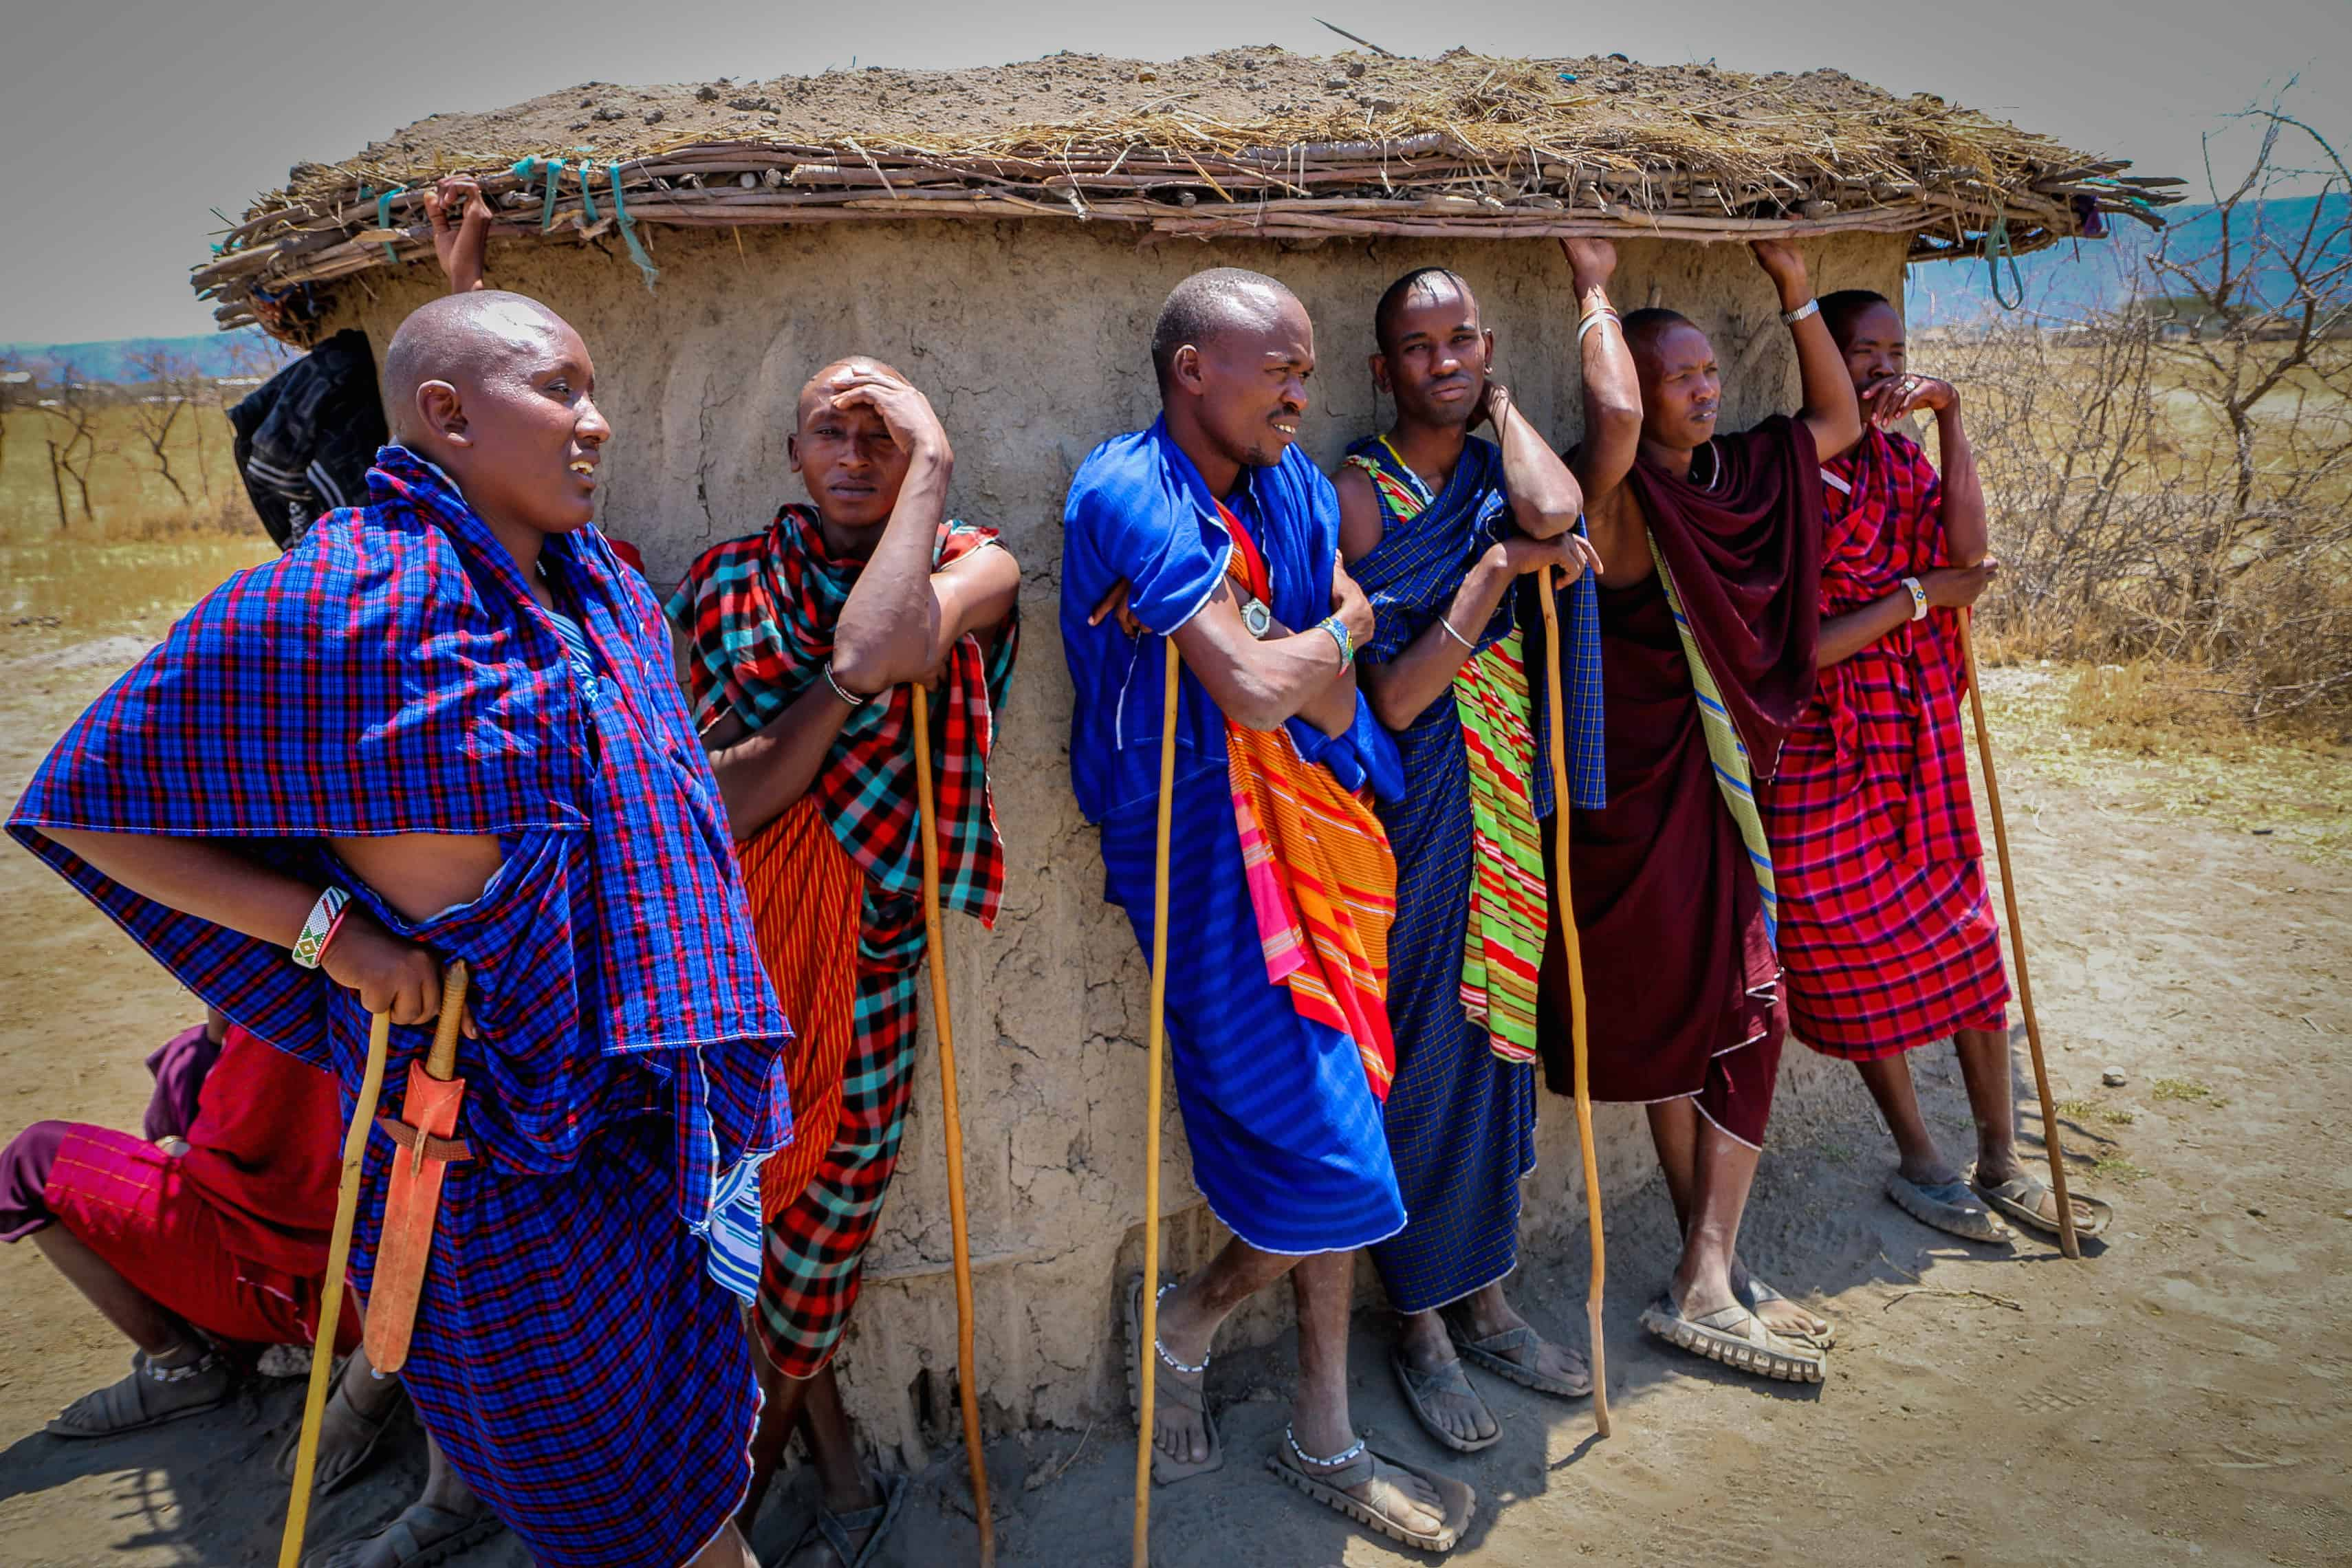 Maasai Men in a Traditional Village in Tanzania